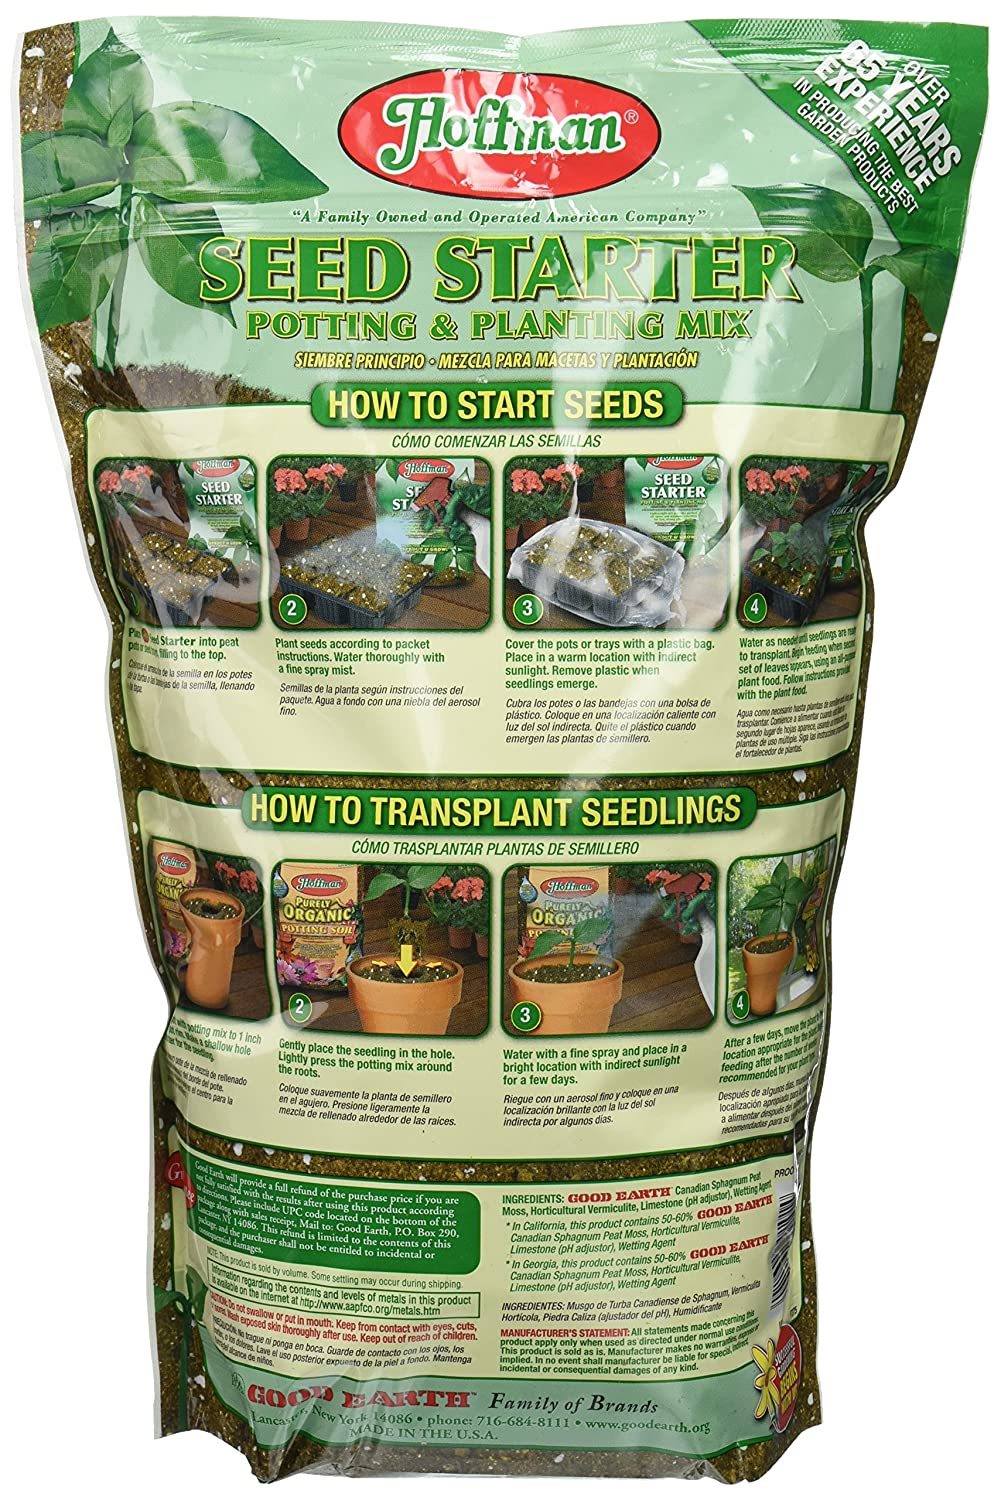 Amazon.com : Hoffman 30101 Seed Starter Soil, 4 Quarts : Soil And Soil Amendments : Garden & Outdoor